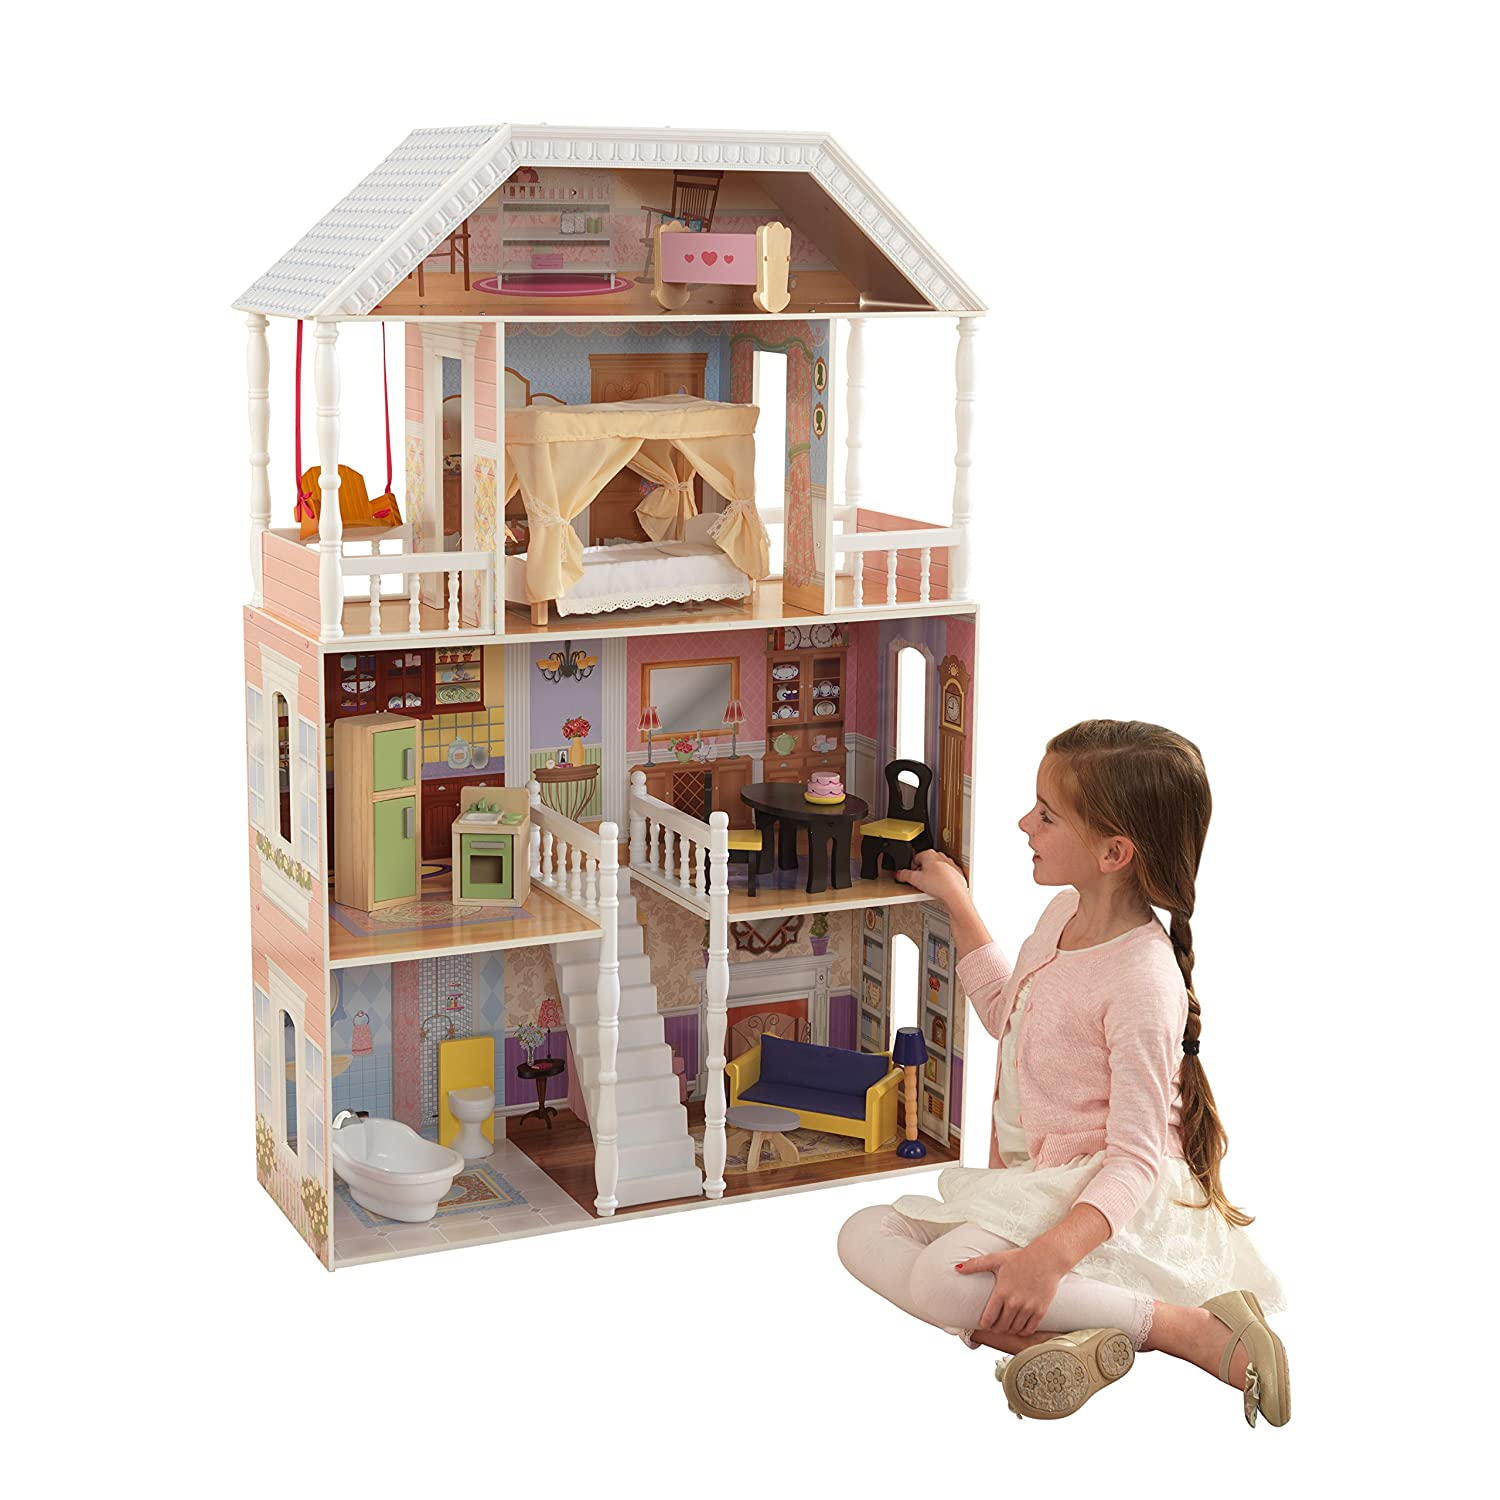 Top 9 Best Dollhouse for Toddlers Reviews in 2021 17